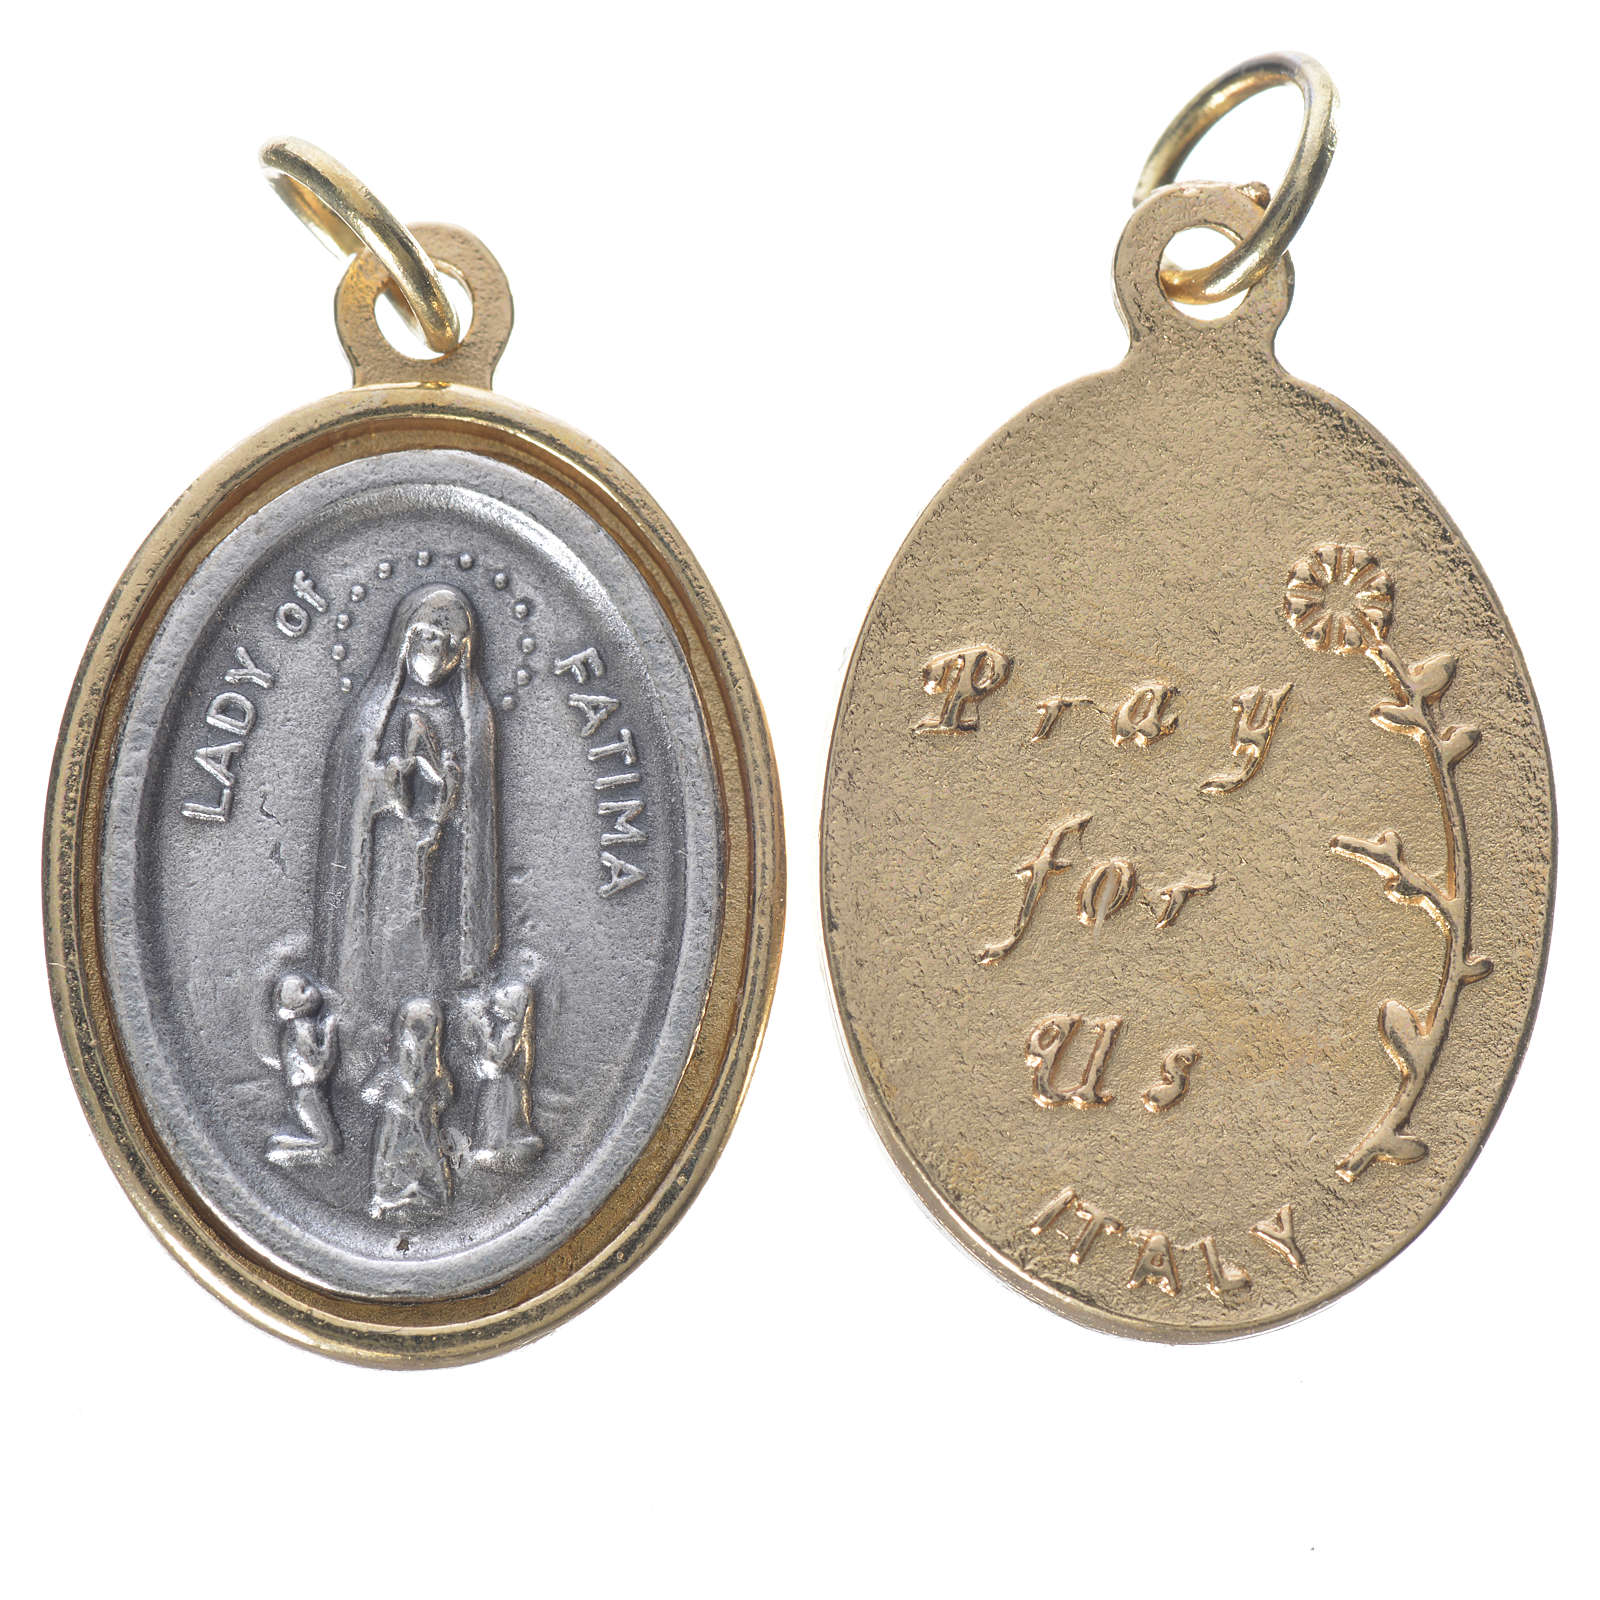 Fatima Medal in silver and golden metal 2.5cm 4